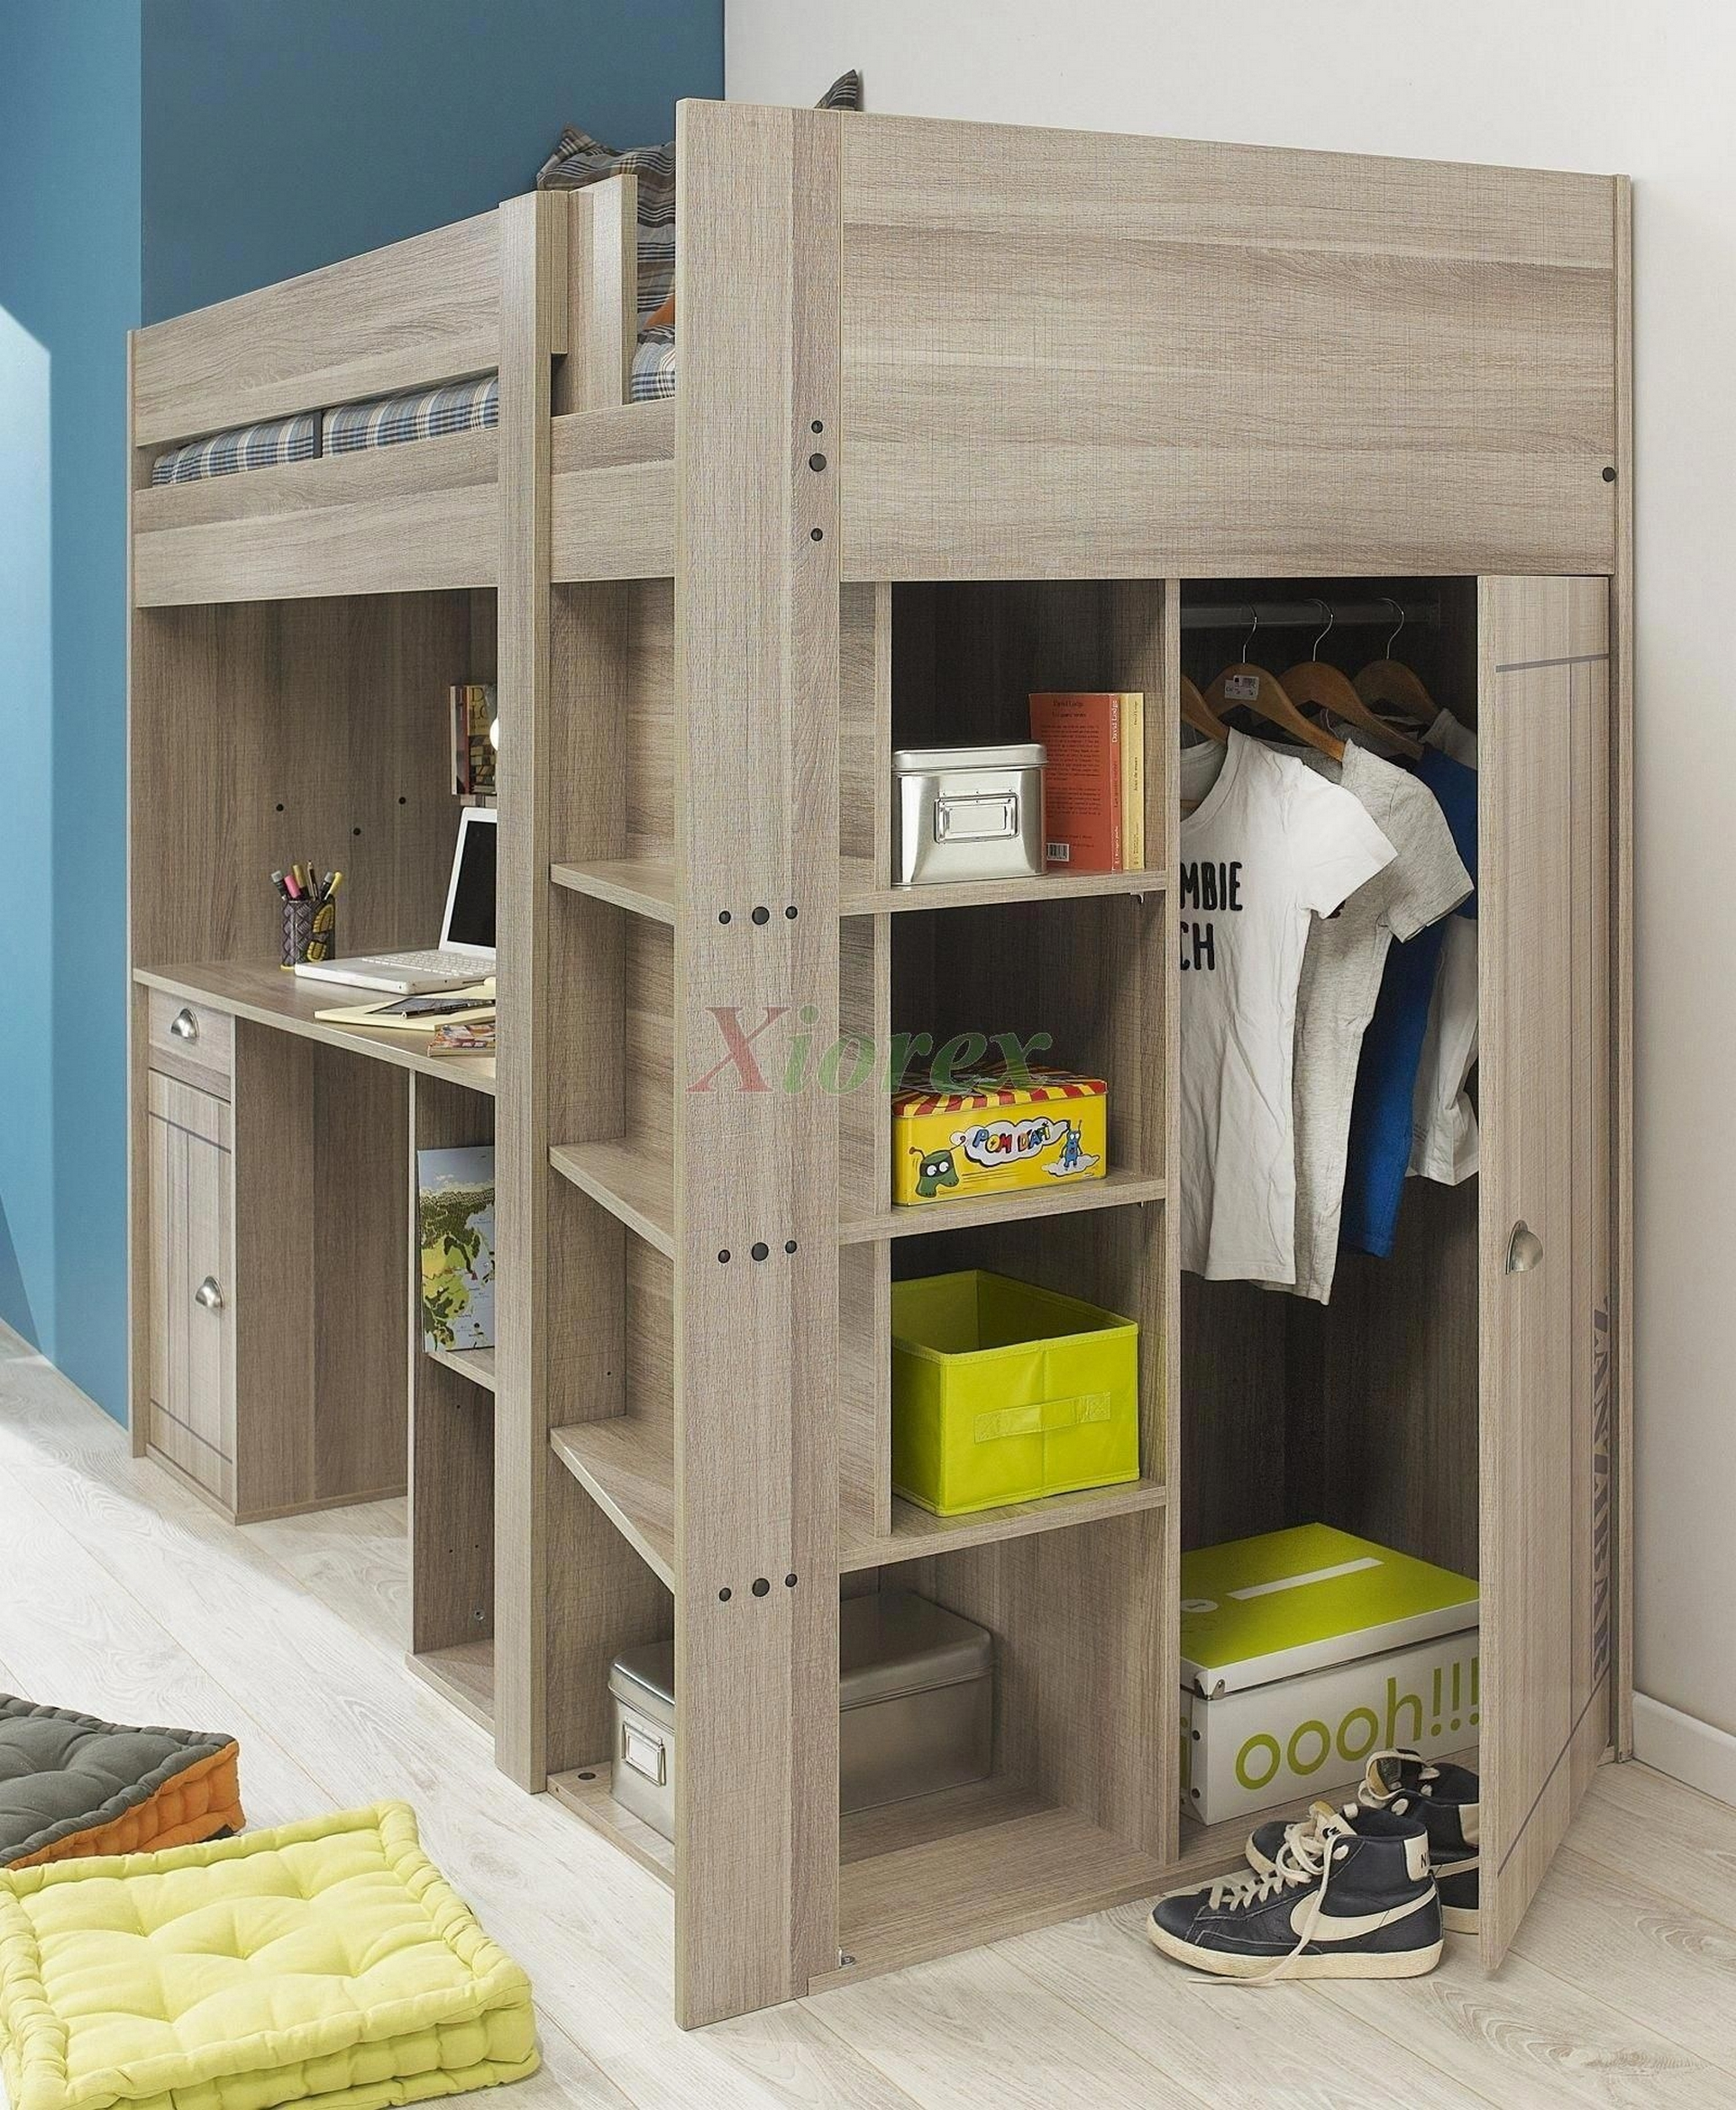 39 Amazing Bunk Beds With Desk Design Ideas Tips Choosing Bunk Beds With Desks 10